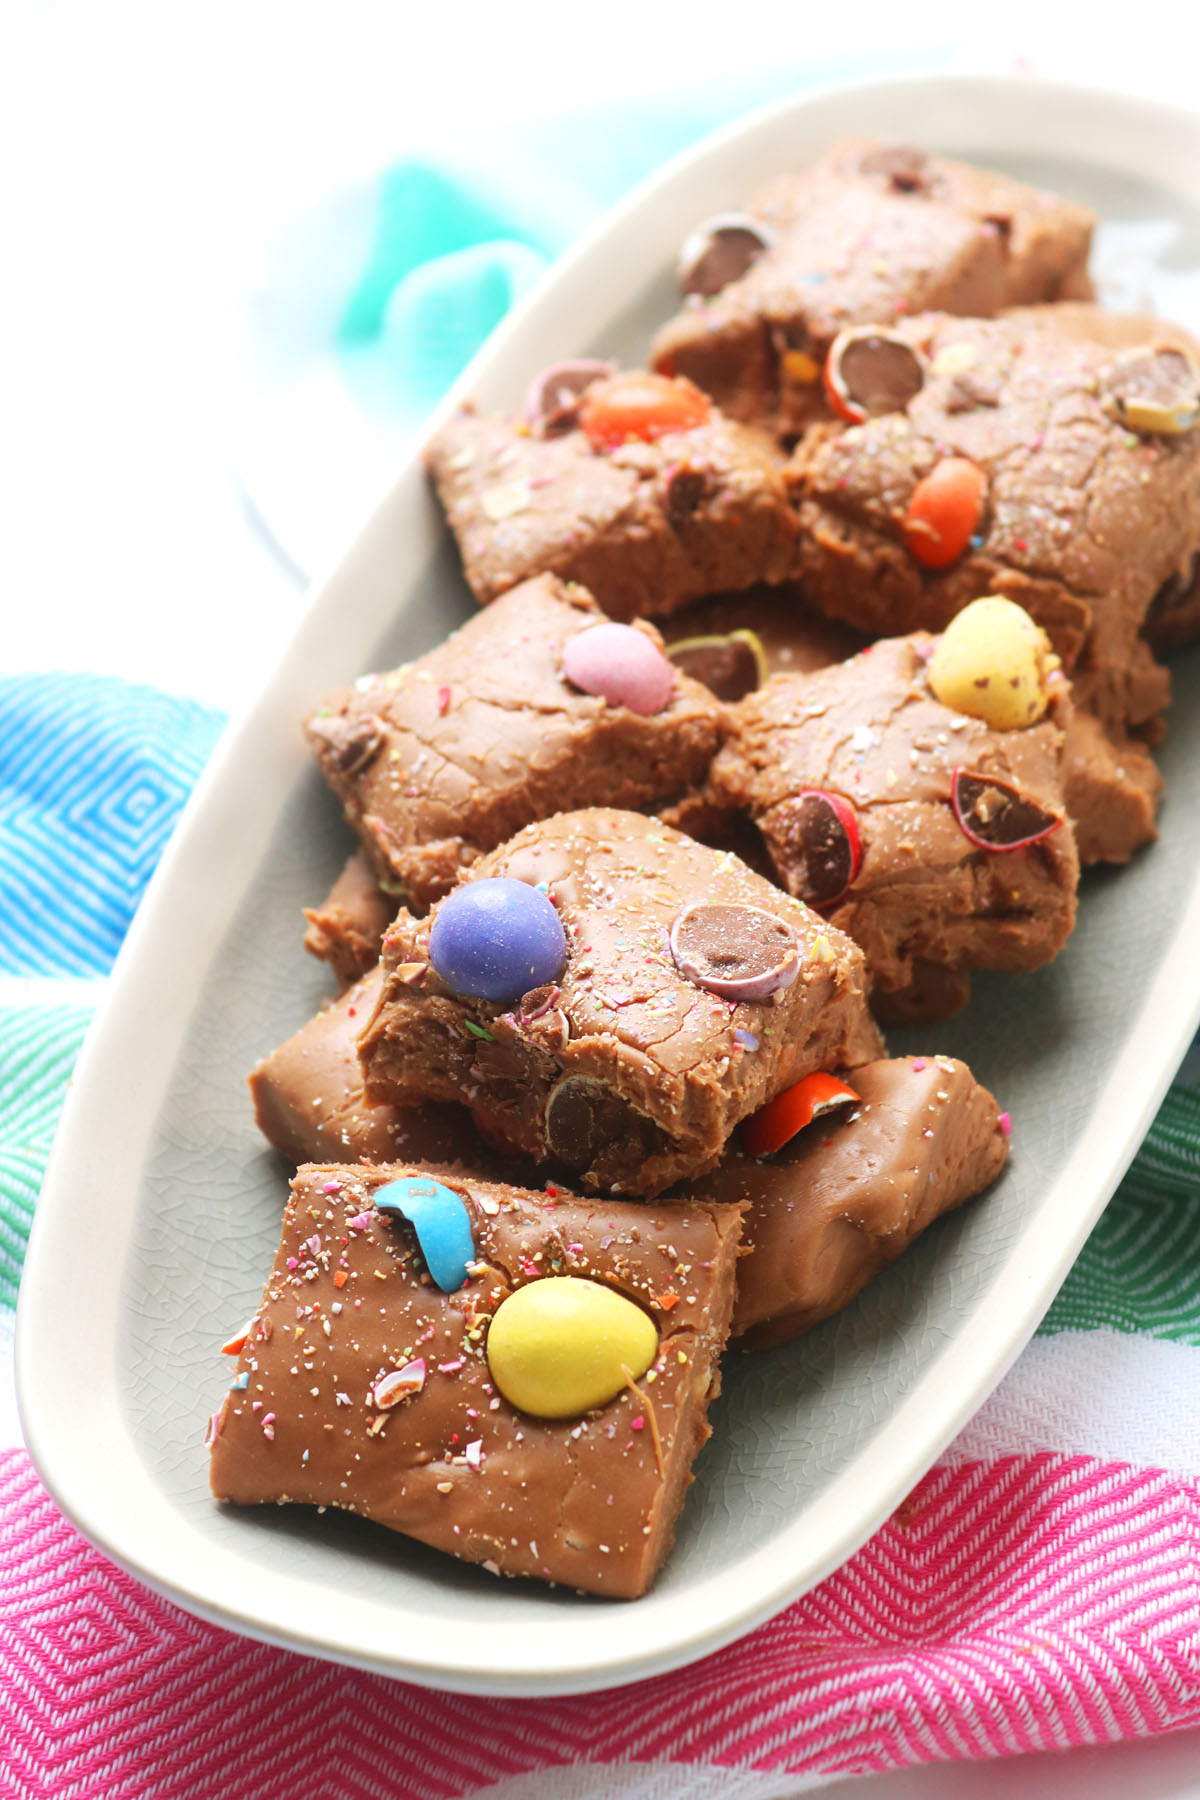 This chocolate Easter fudge is made with chocolate, condensed milk, butter and icing sugar. Add your favourite Easter candies!